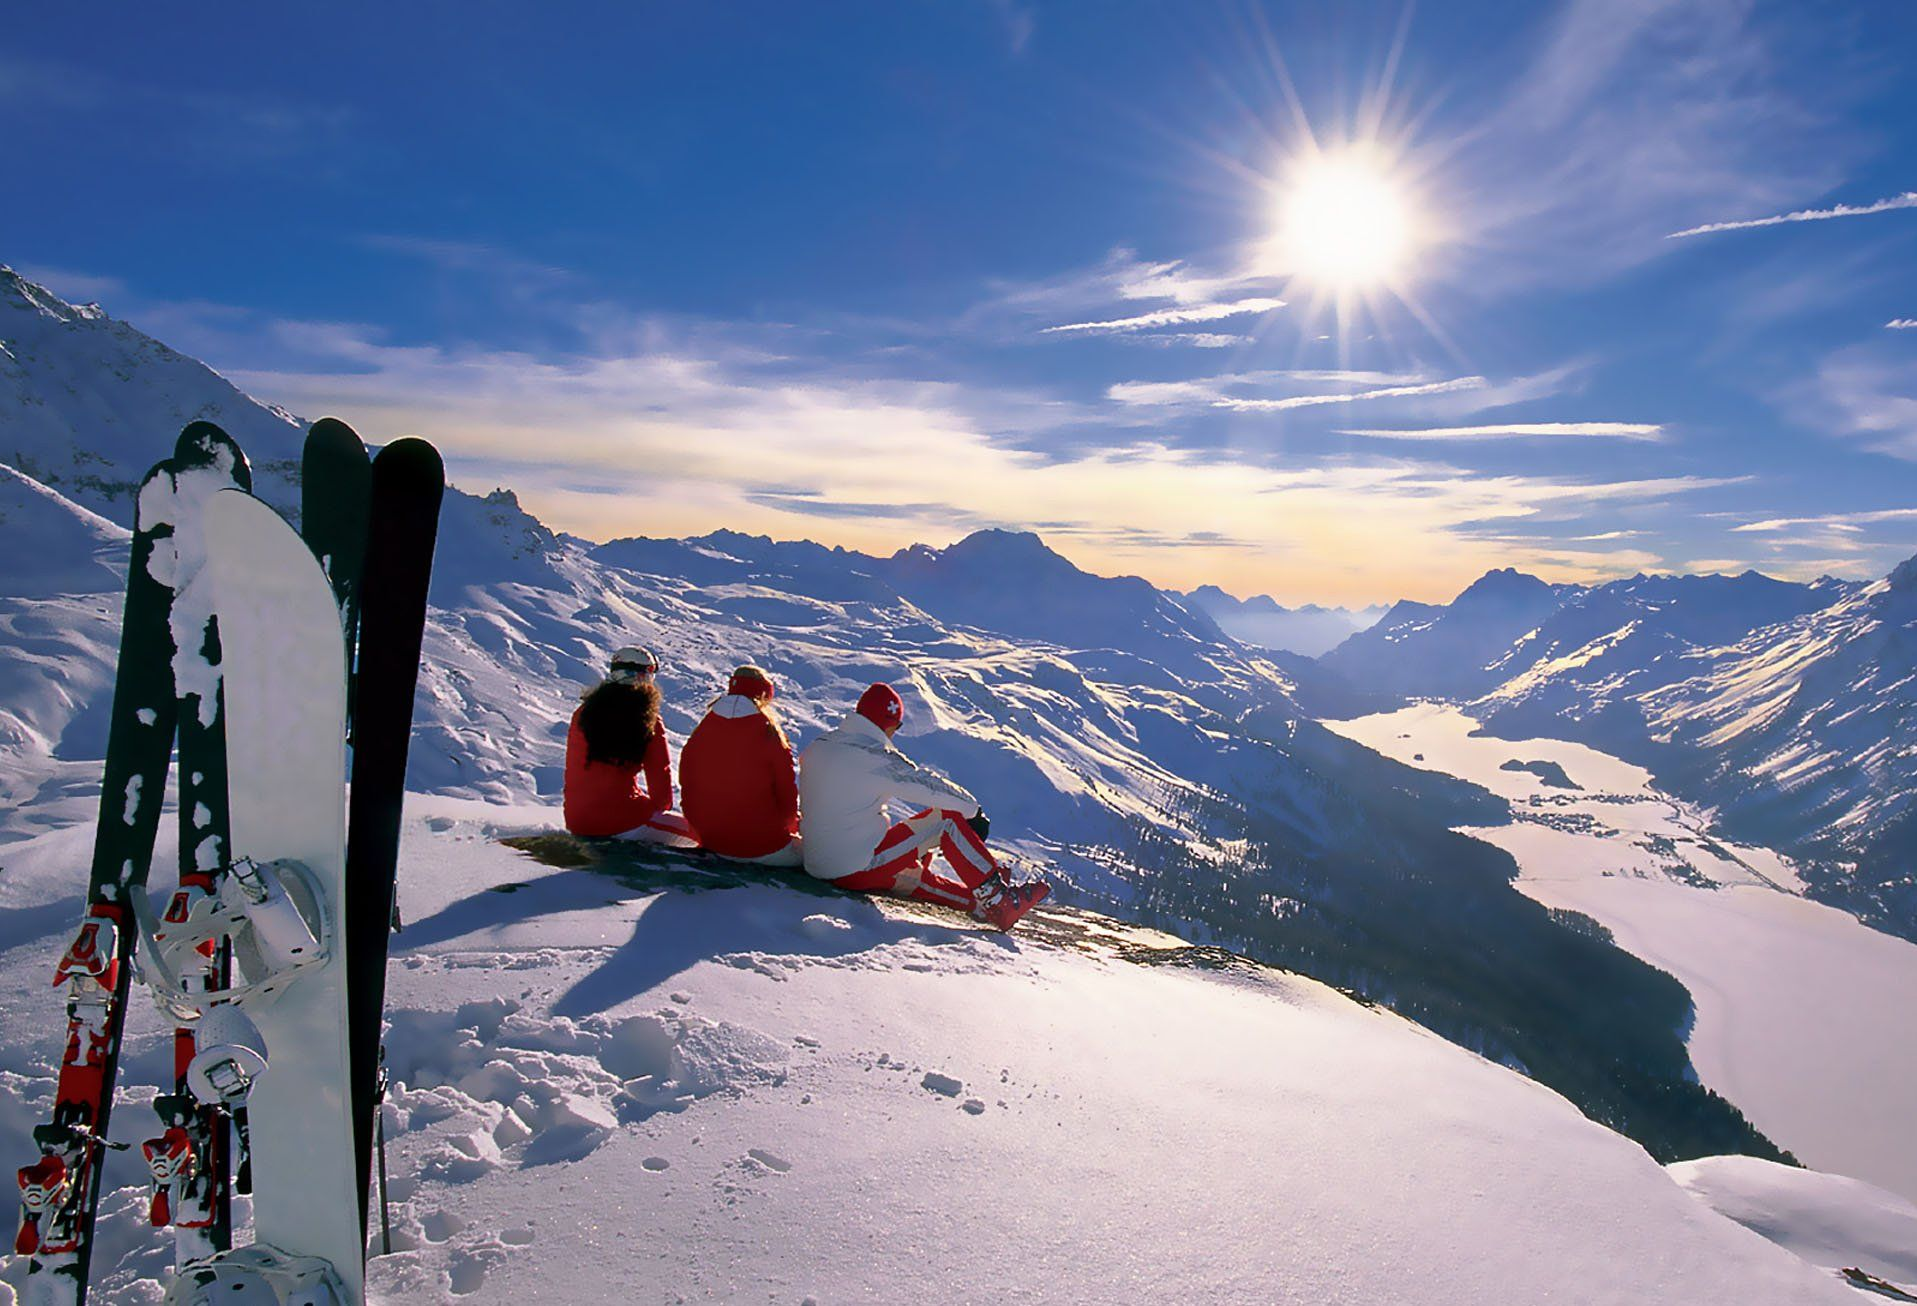 Skiing Wallpaper Ski Mountain Wallpapers Top Free Ski Mountain Backgrounds